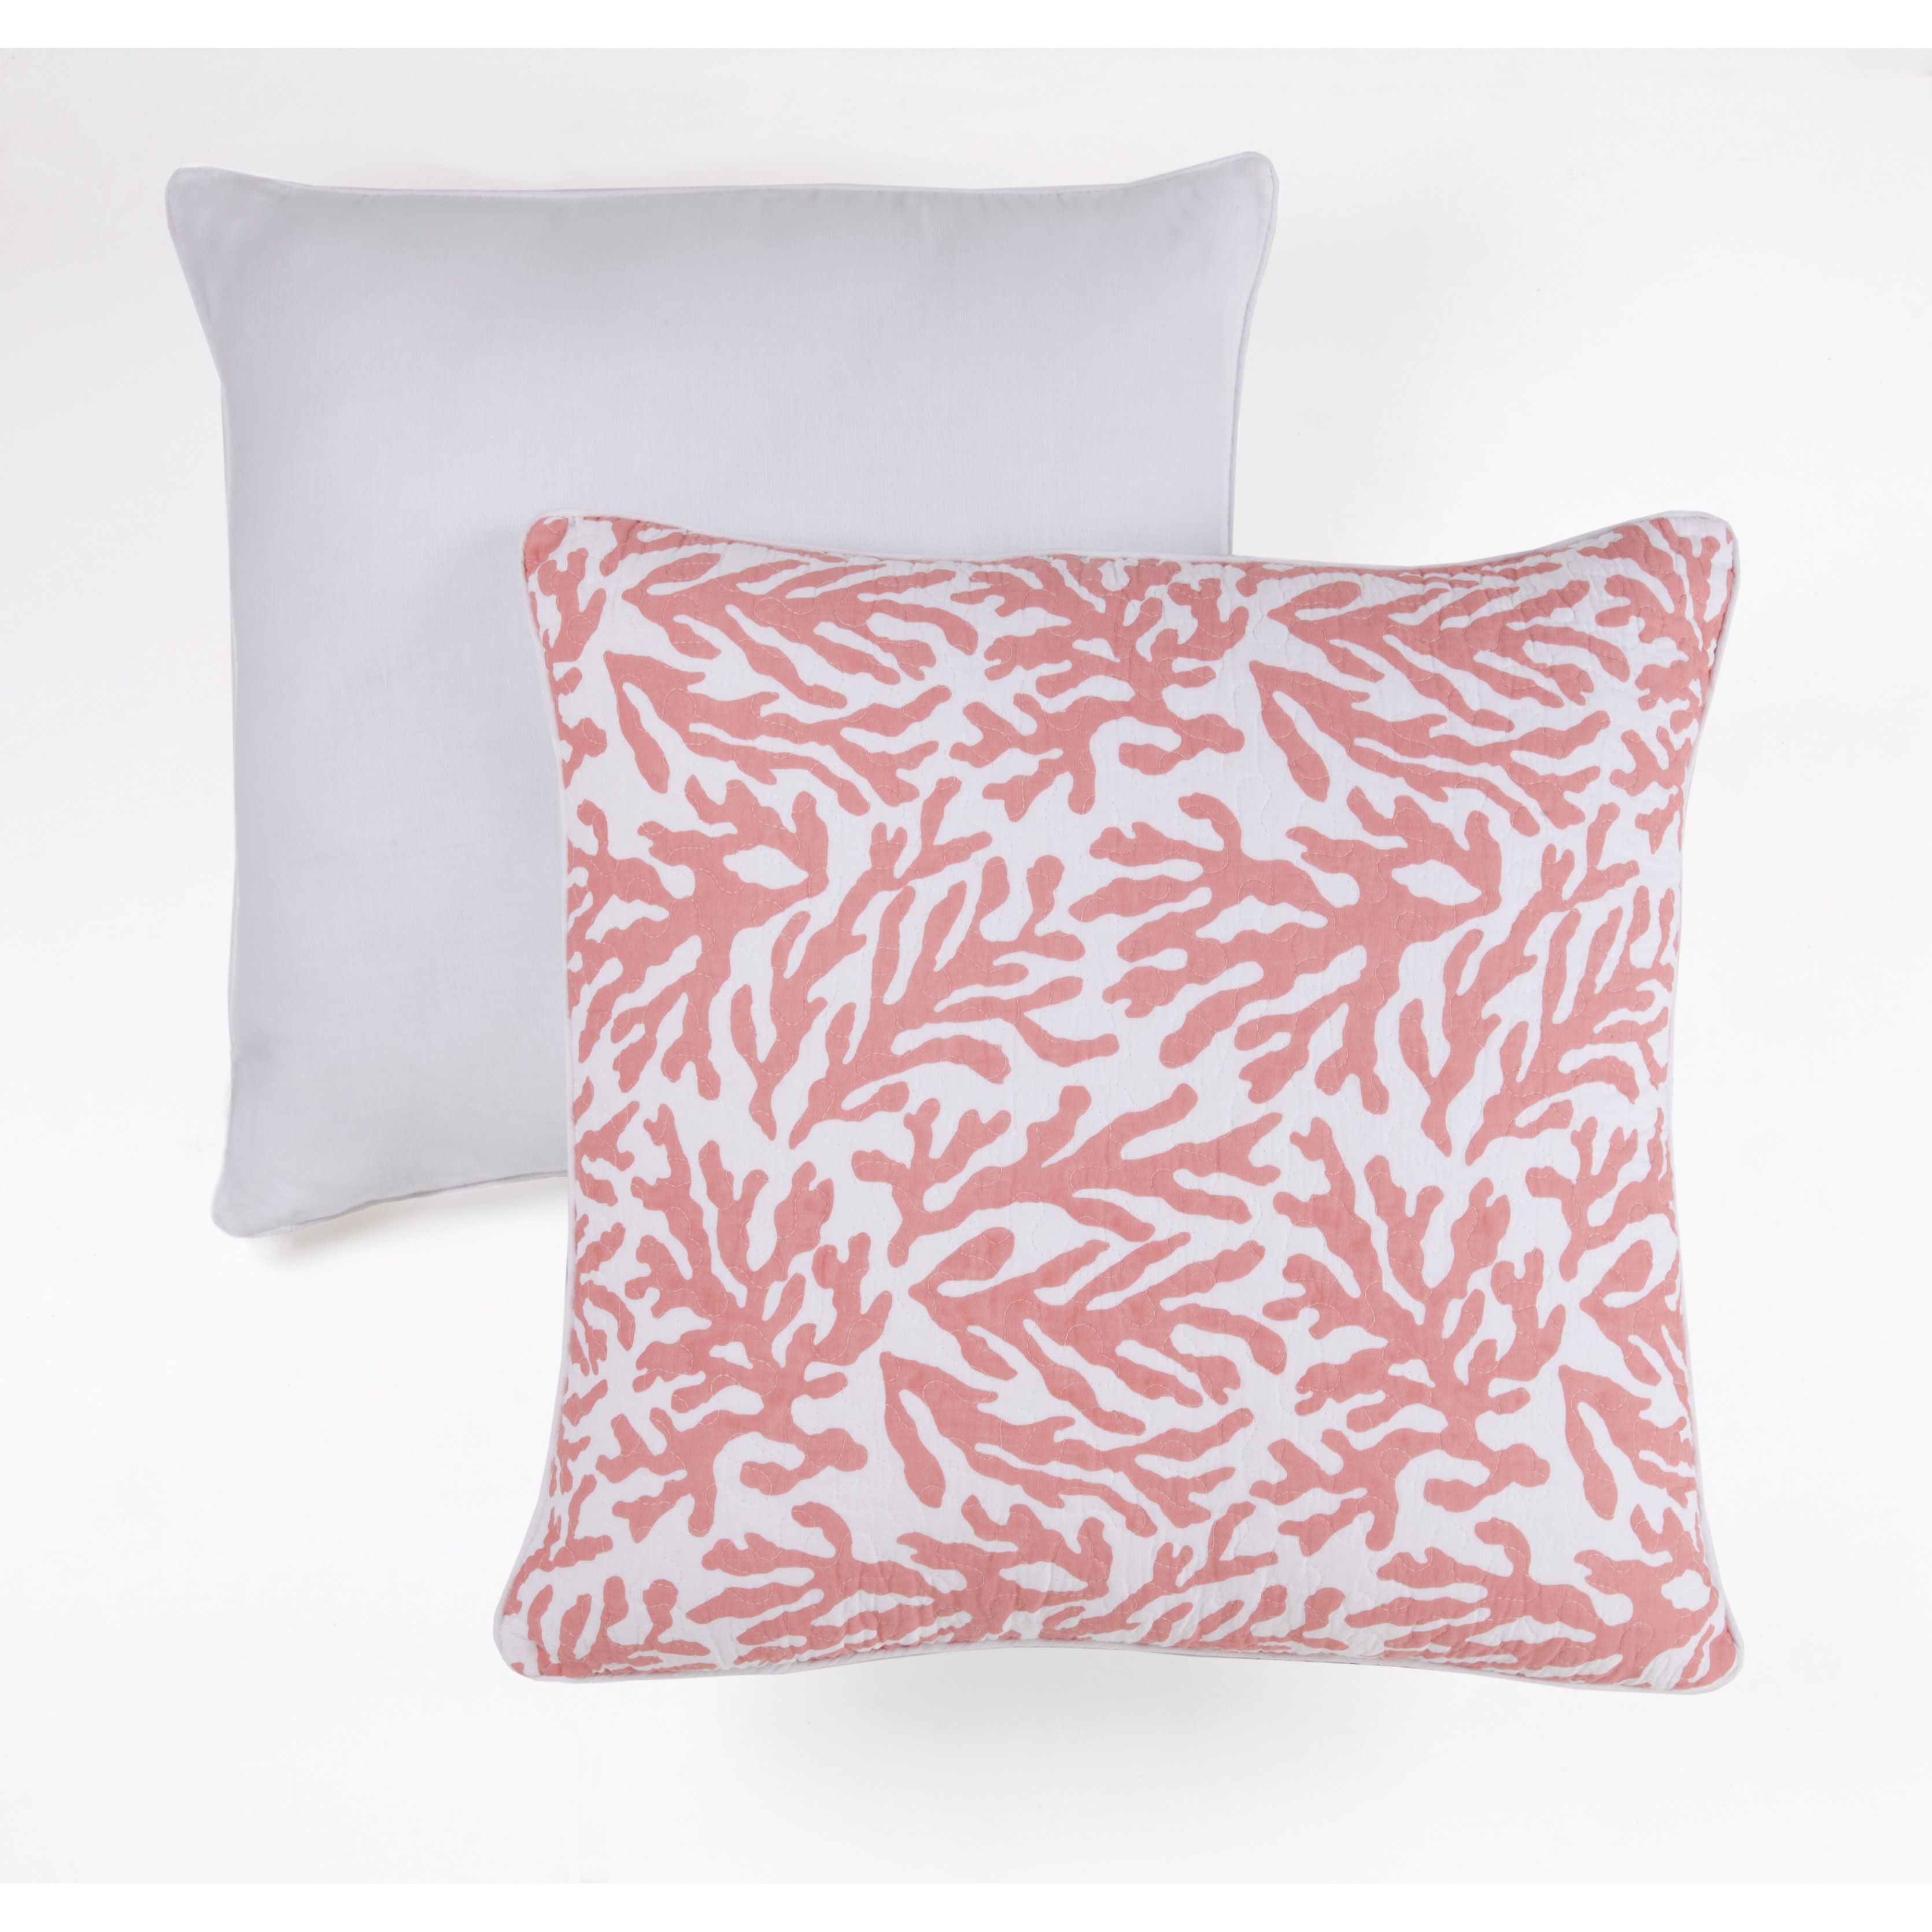 combos diy pillows to bedroom cute no best target pillow combinations three i stenciled elegant end decorative sewed coral these designer online sets emily including walmart makrillarnacom accent covers grey clearance high where throw fail henderson cheap